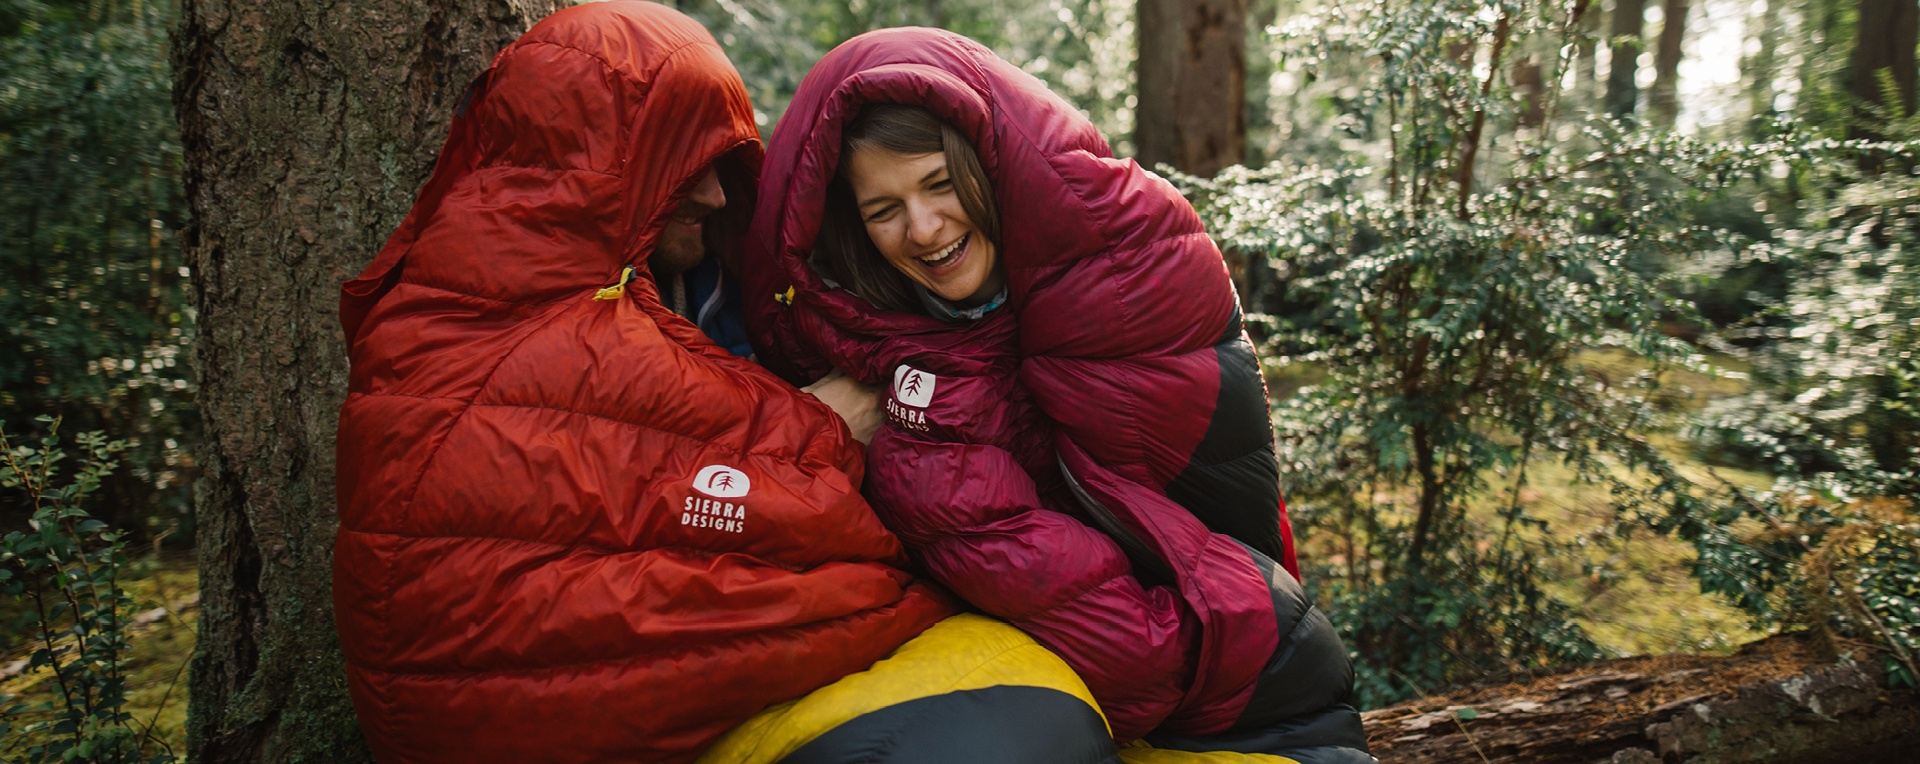 New Award-Winning Cloud Sleeping Bags Now Available for Preorder